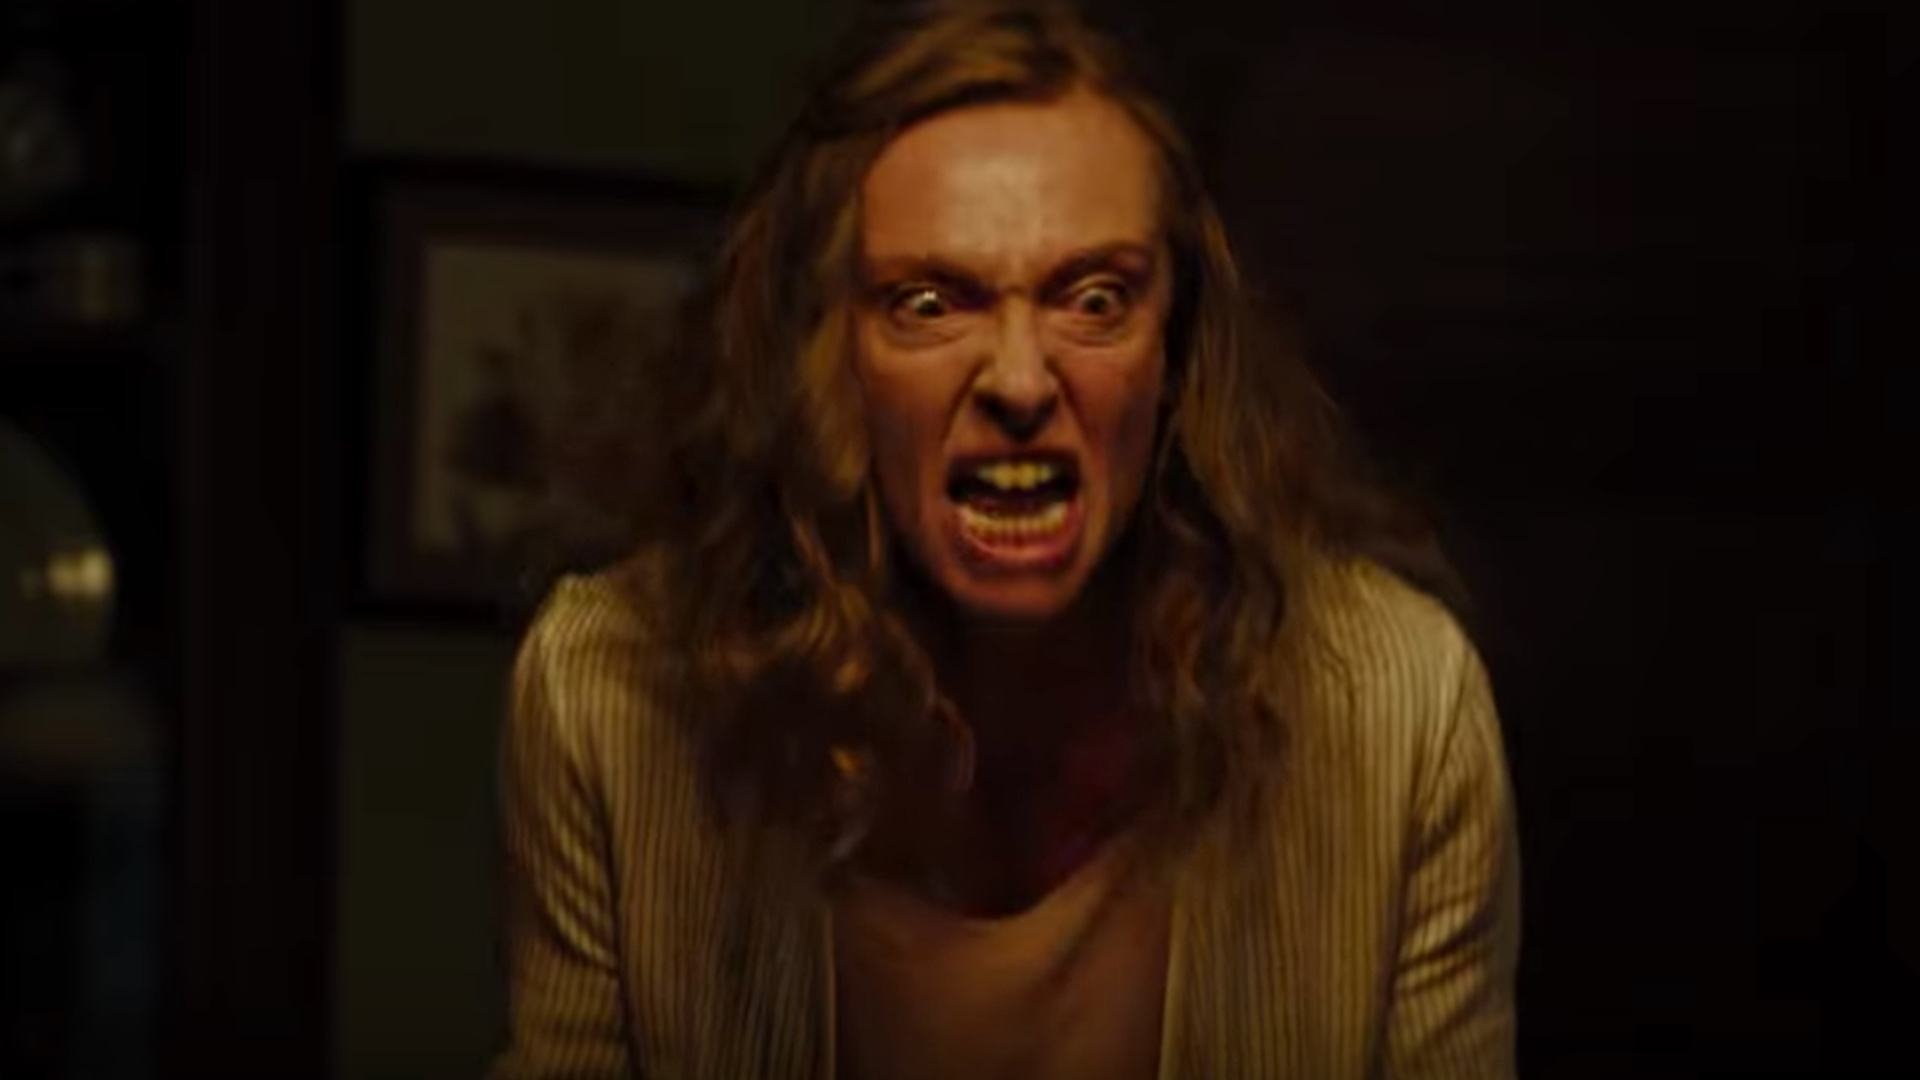 Toni Collette Terrifies In This New Promo Spot For The Disturbing